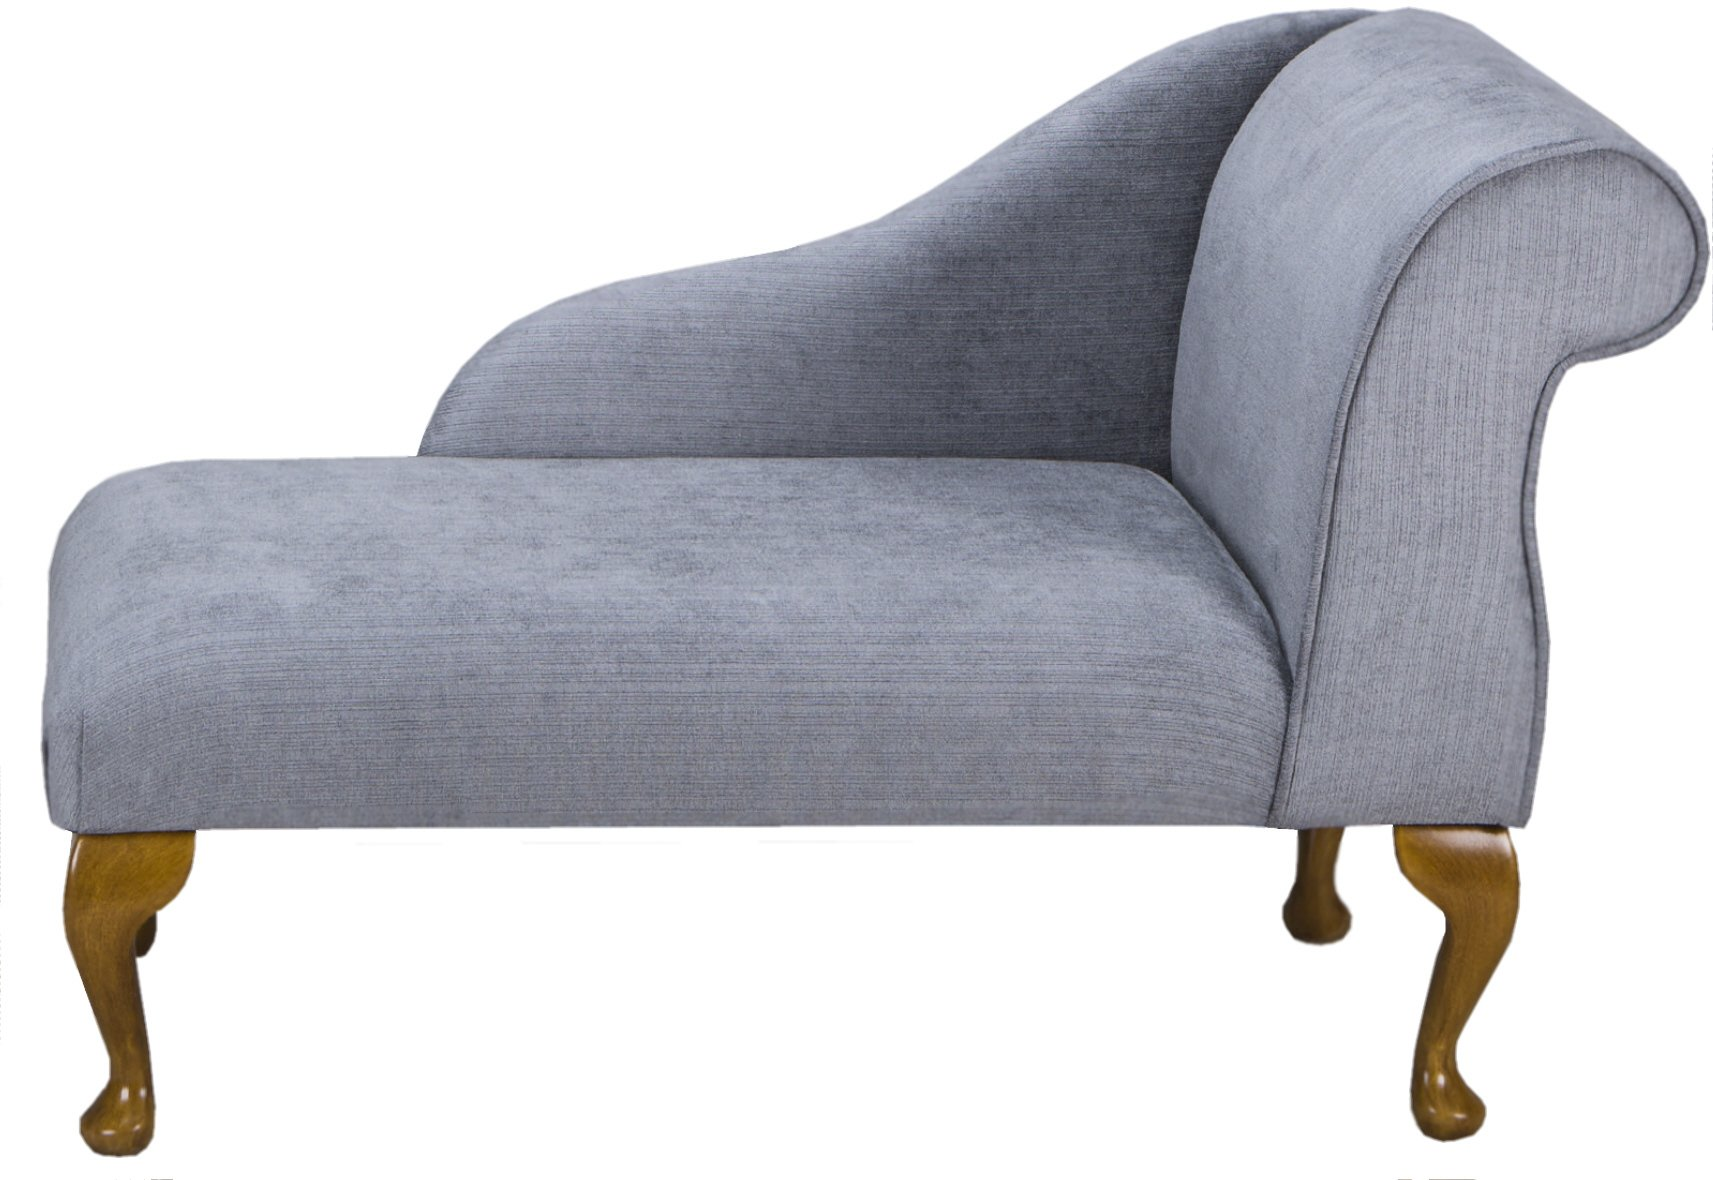 41 Small Classic Chaise Longue Chair Buy Online In Cayman Islands At Desertcart